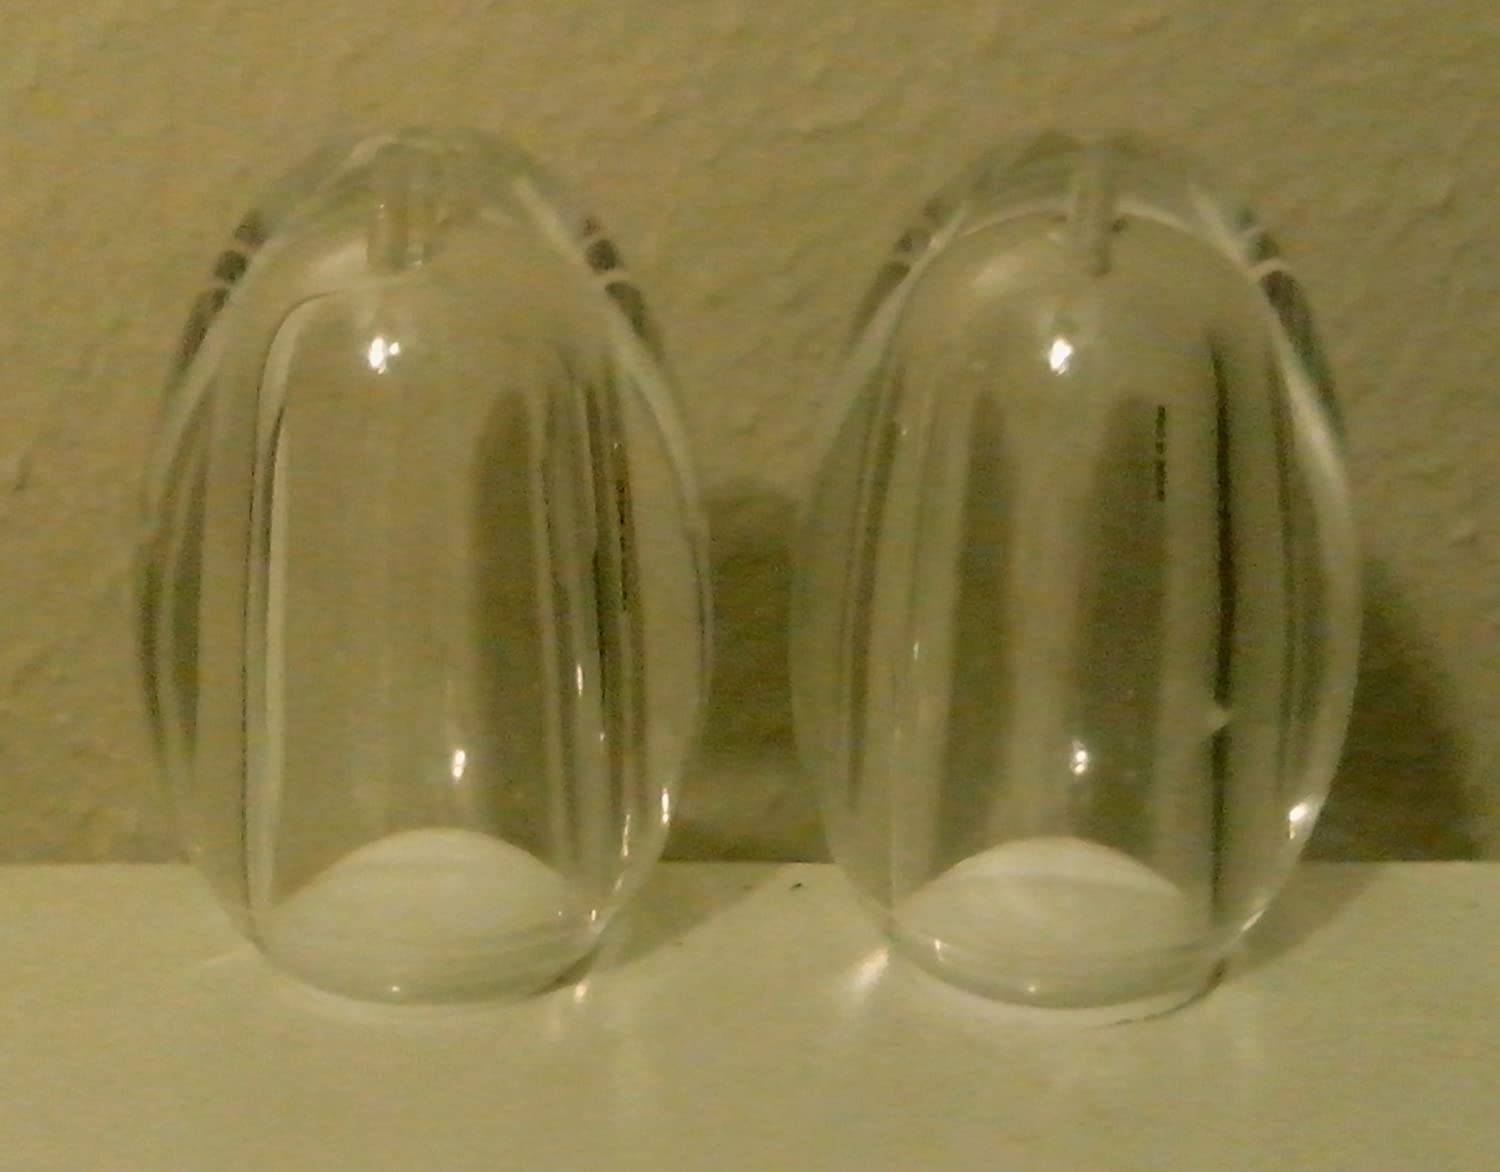 Acrylic Just Like Egg Shakers (Set of 2), 2.0 x 3.0, by William Bounds shakespeare william rdr cd [lv 2] romeo and juliet